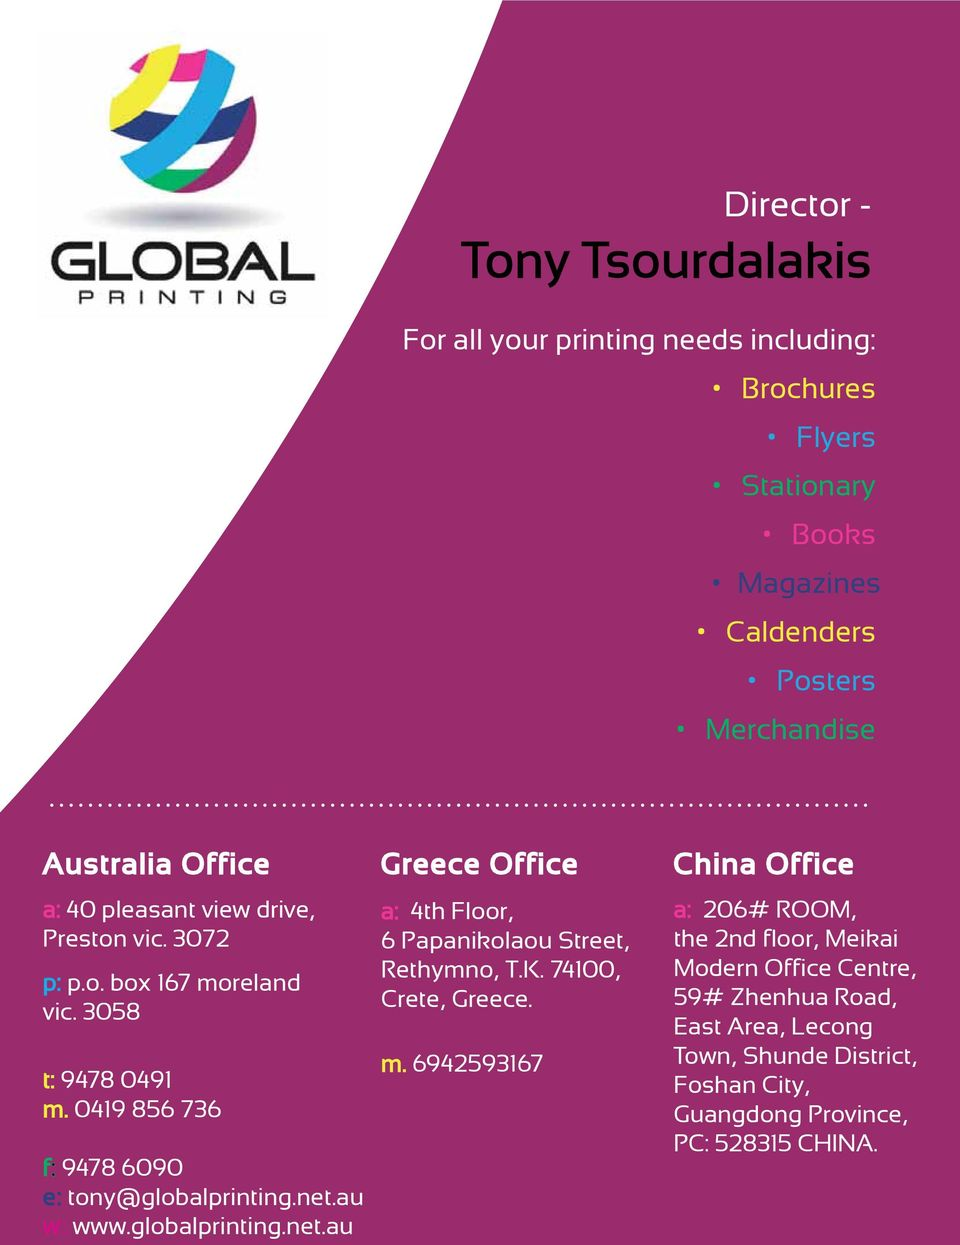 au w: www.globalprinting.net.au Greece Office a: 4th Floor, 6 Papanikolaou Street, Rethymno, T.K. 74100, Crete, Greece. m.